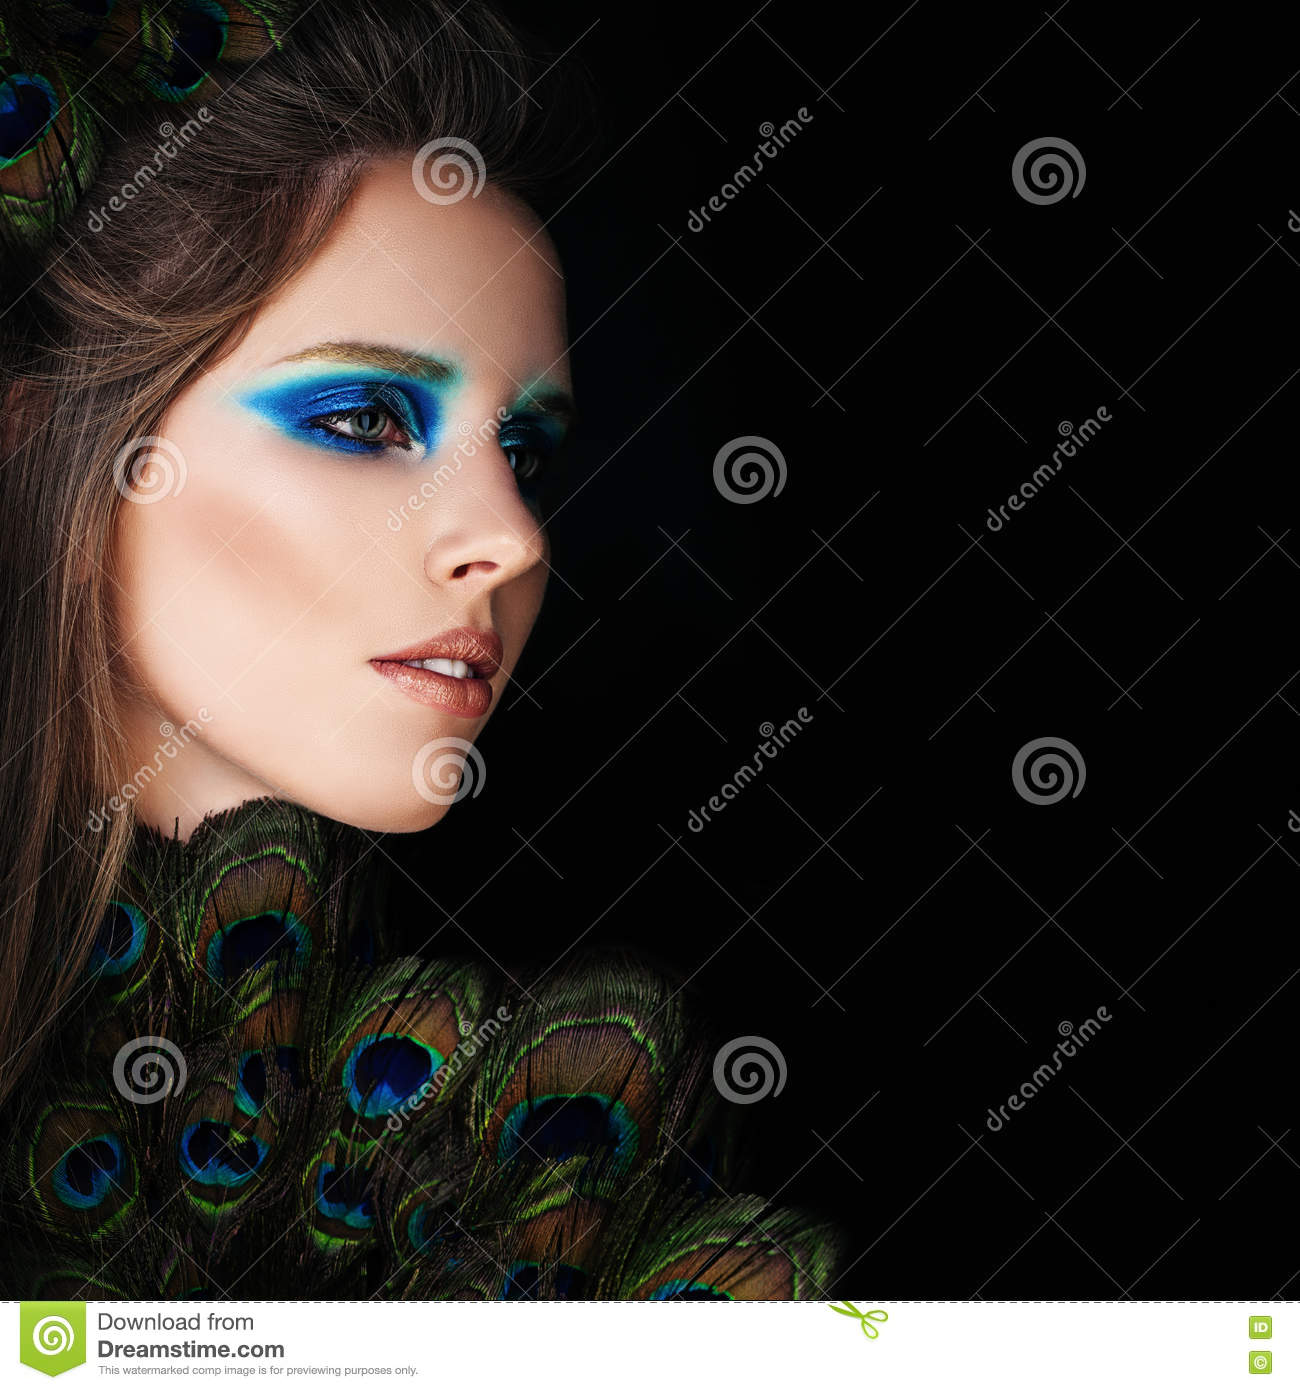 Glamorous Woman with Makeup and Peacock Feathers on Black